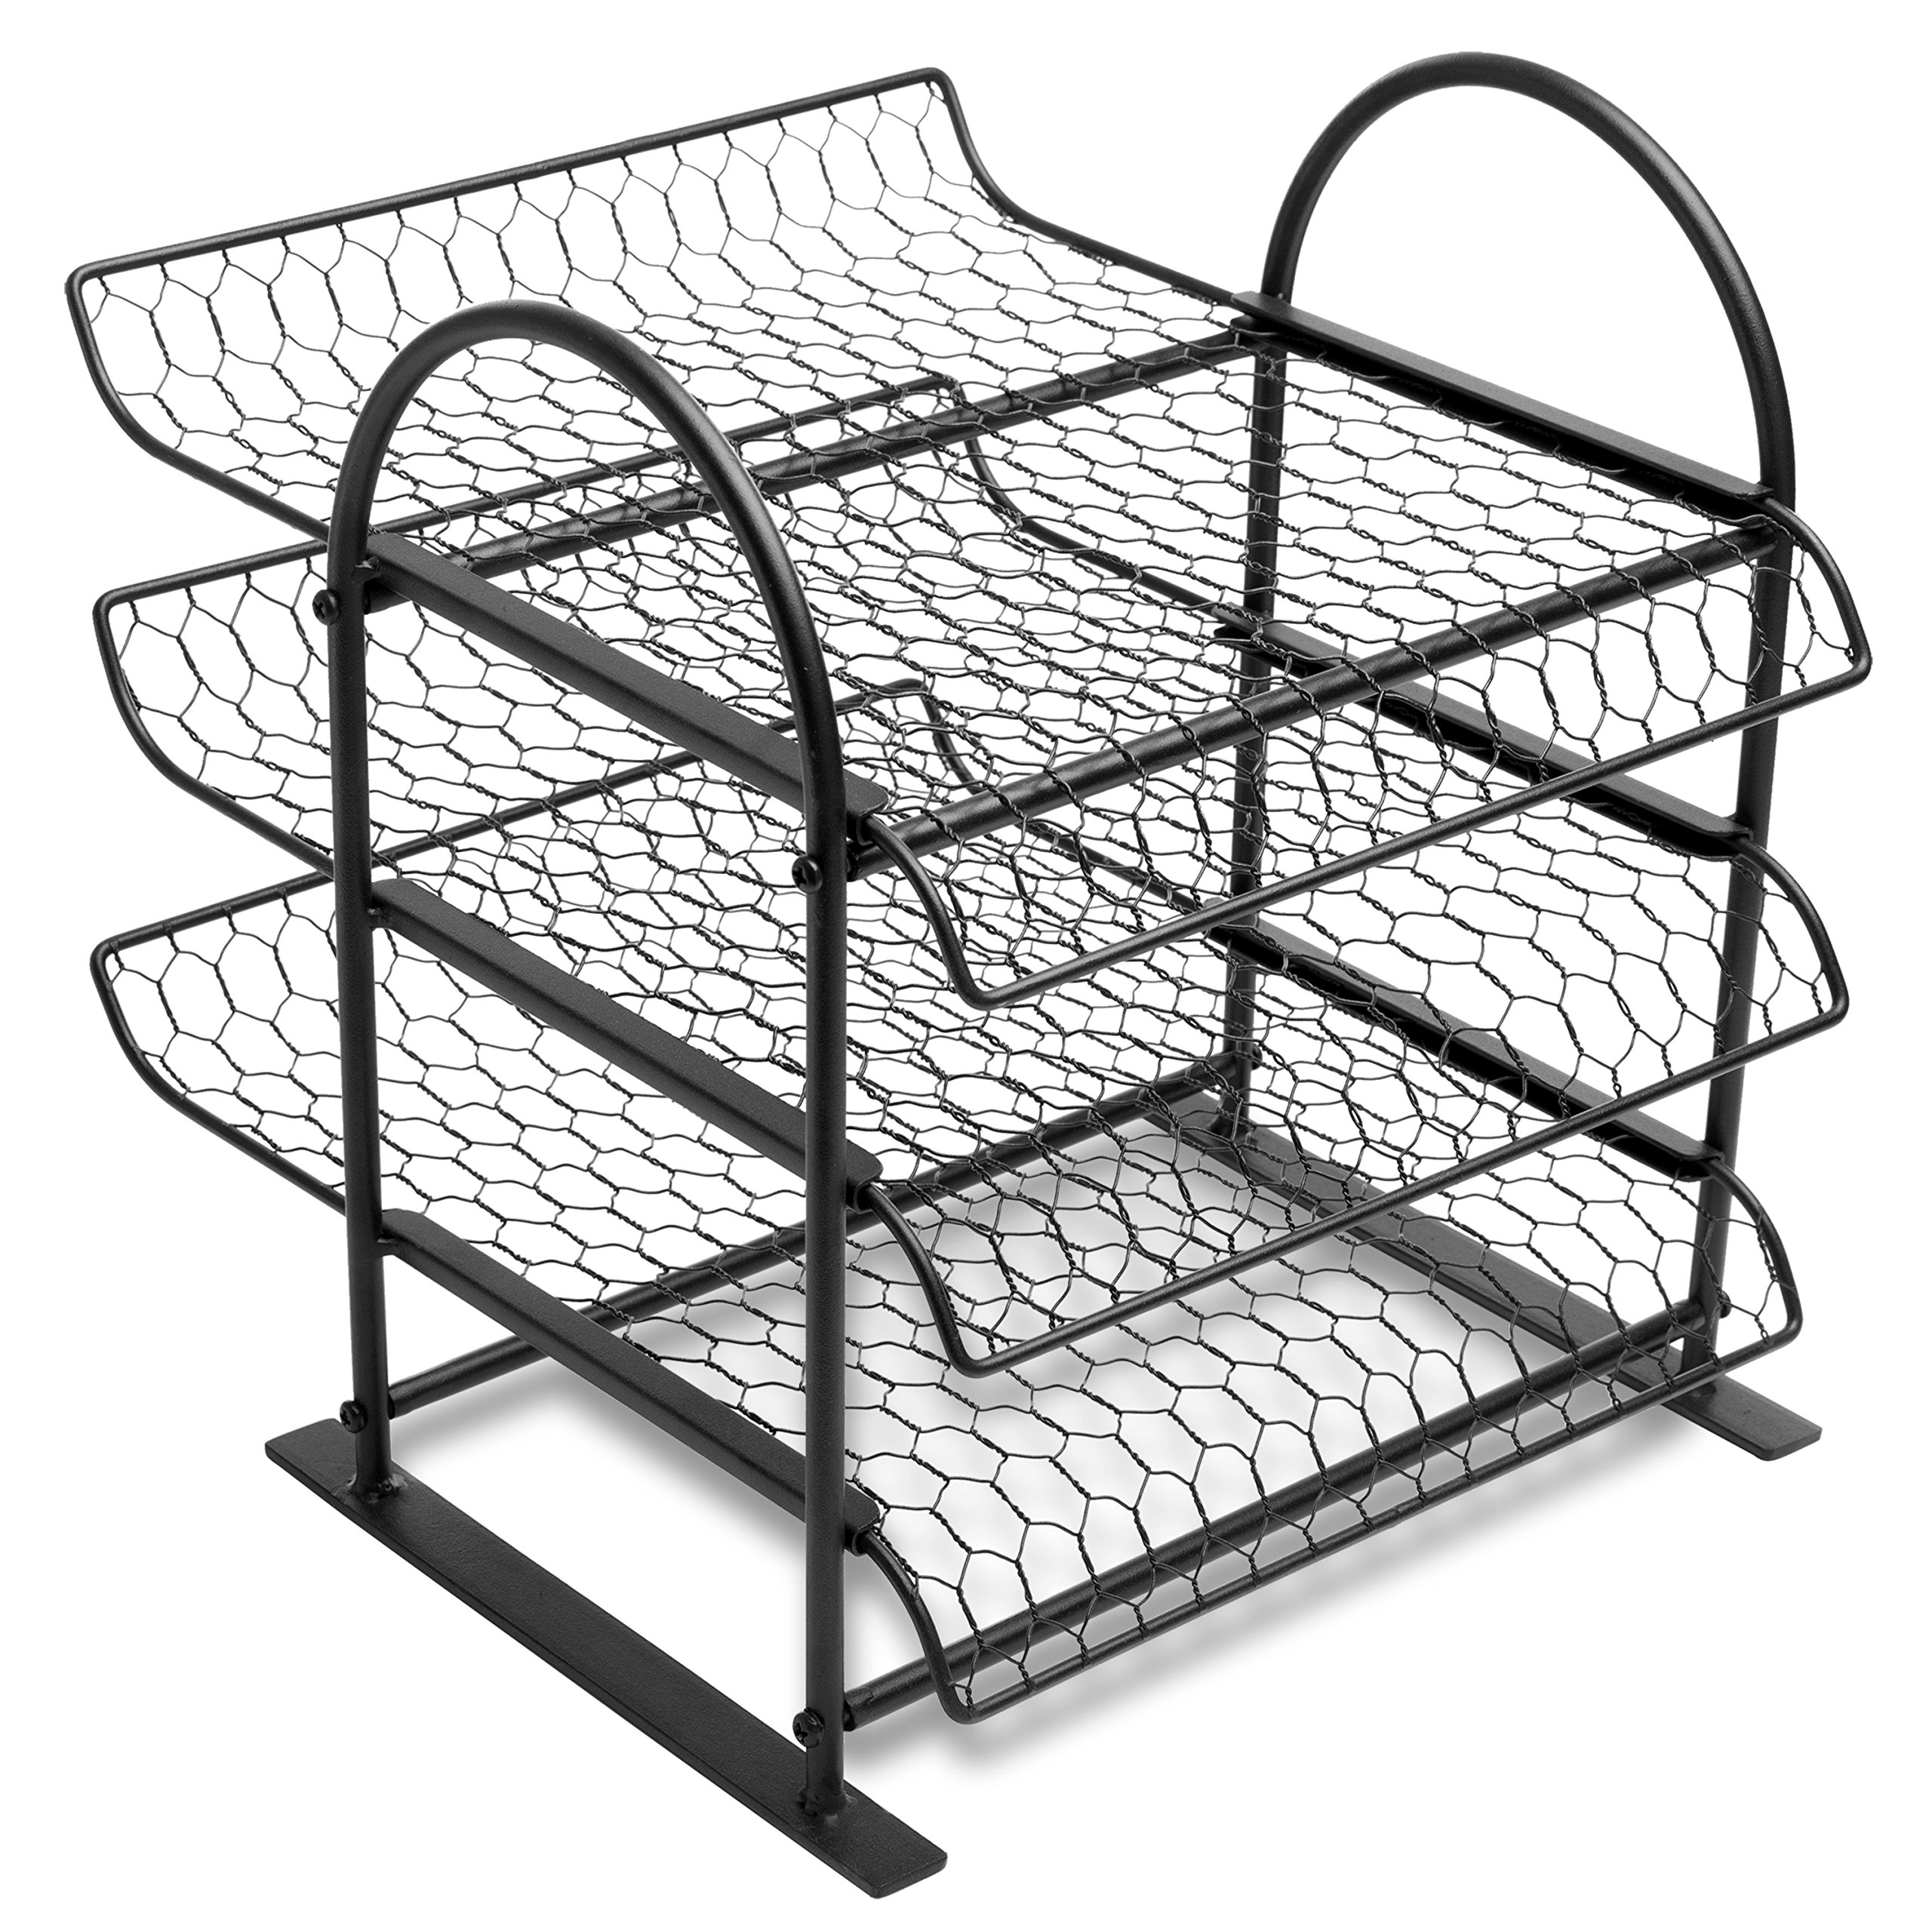 MyGift Metal Chicken Wire Office Document File Organizer with 3-Tier Sliding Trays by MyGift (Image #4)